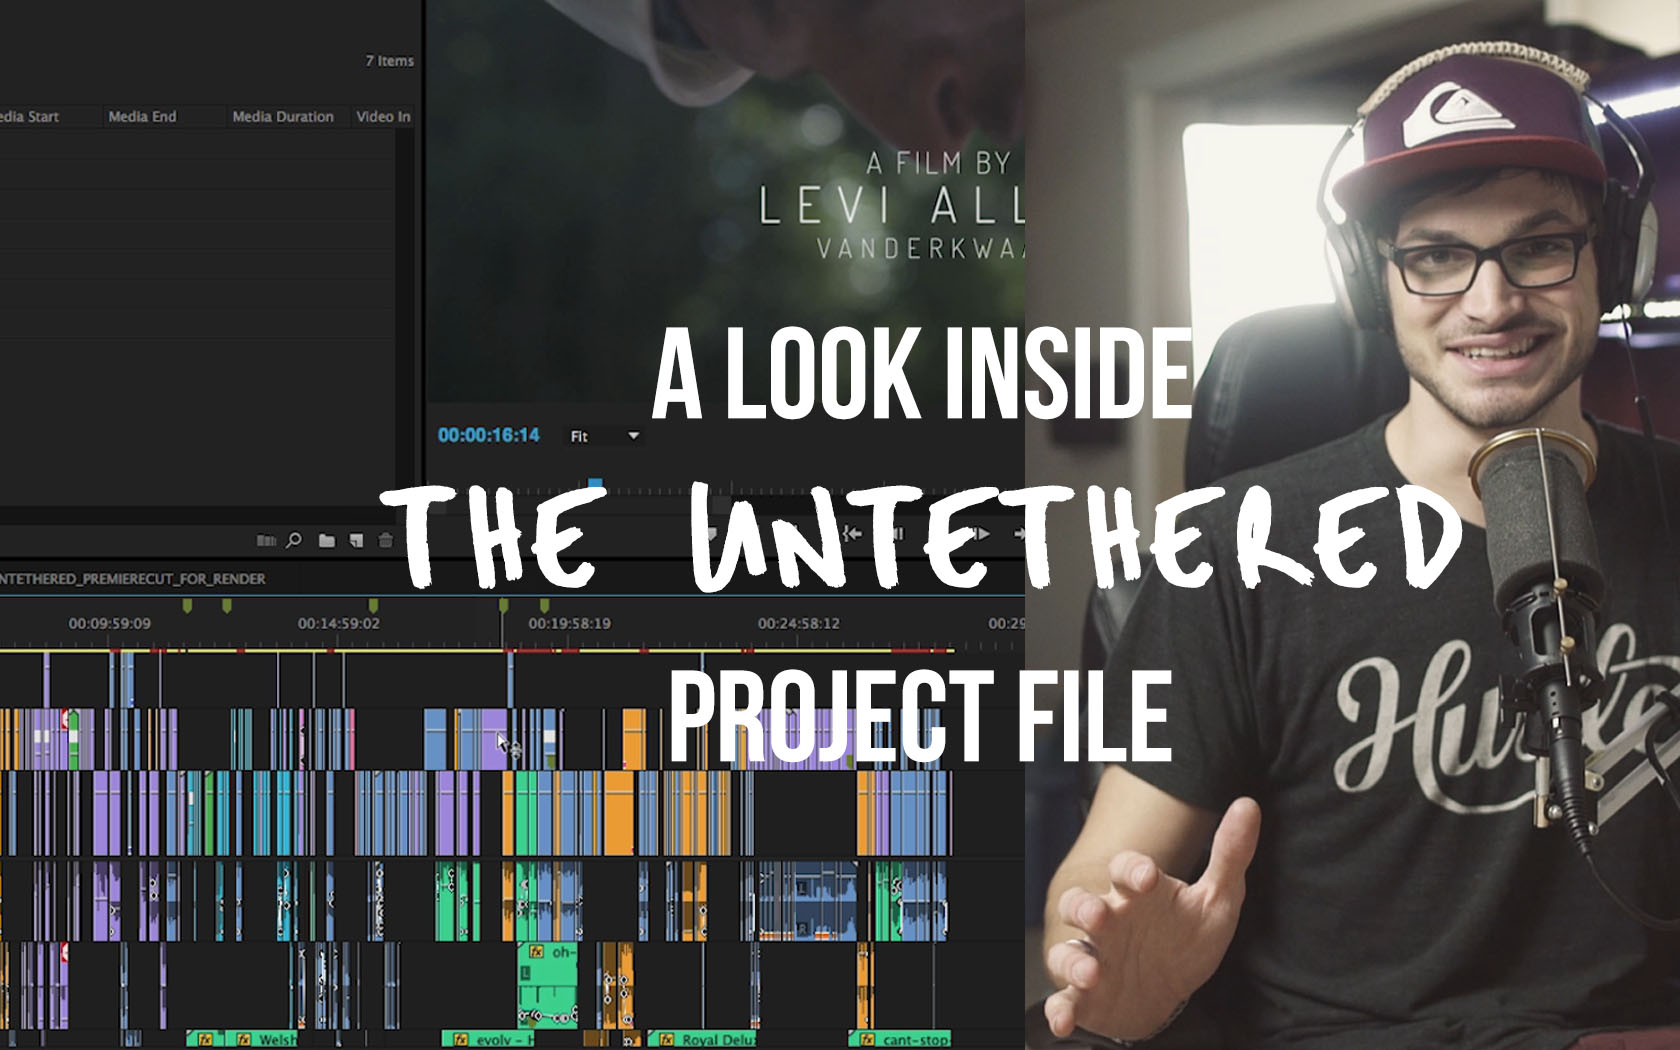 A-Look-Inside-the-Untethered-Project-File.jpg